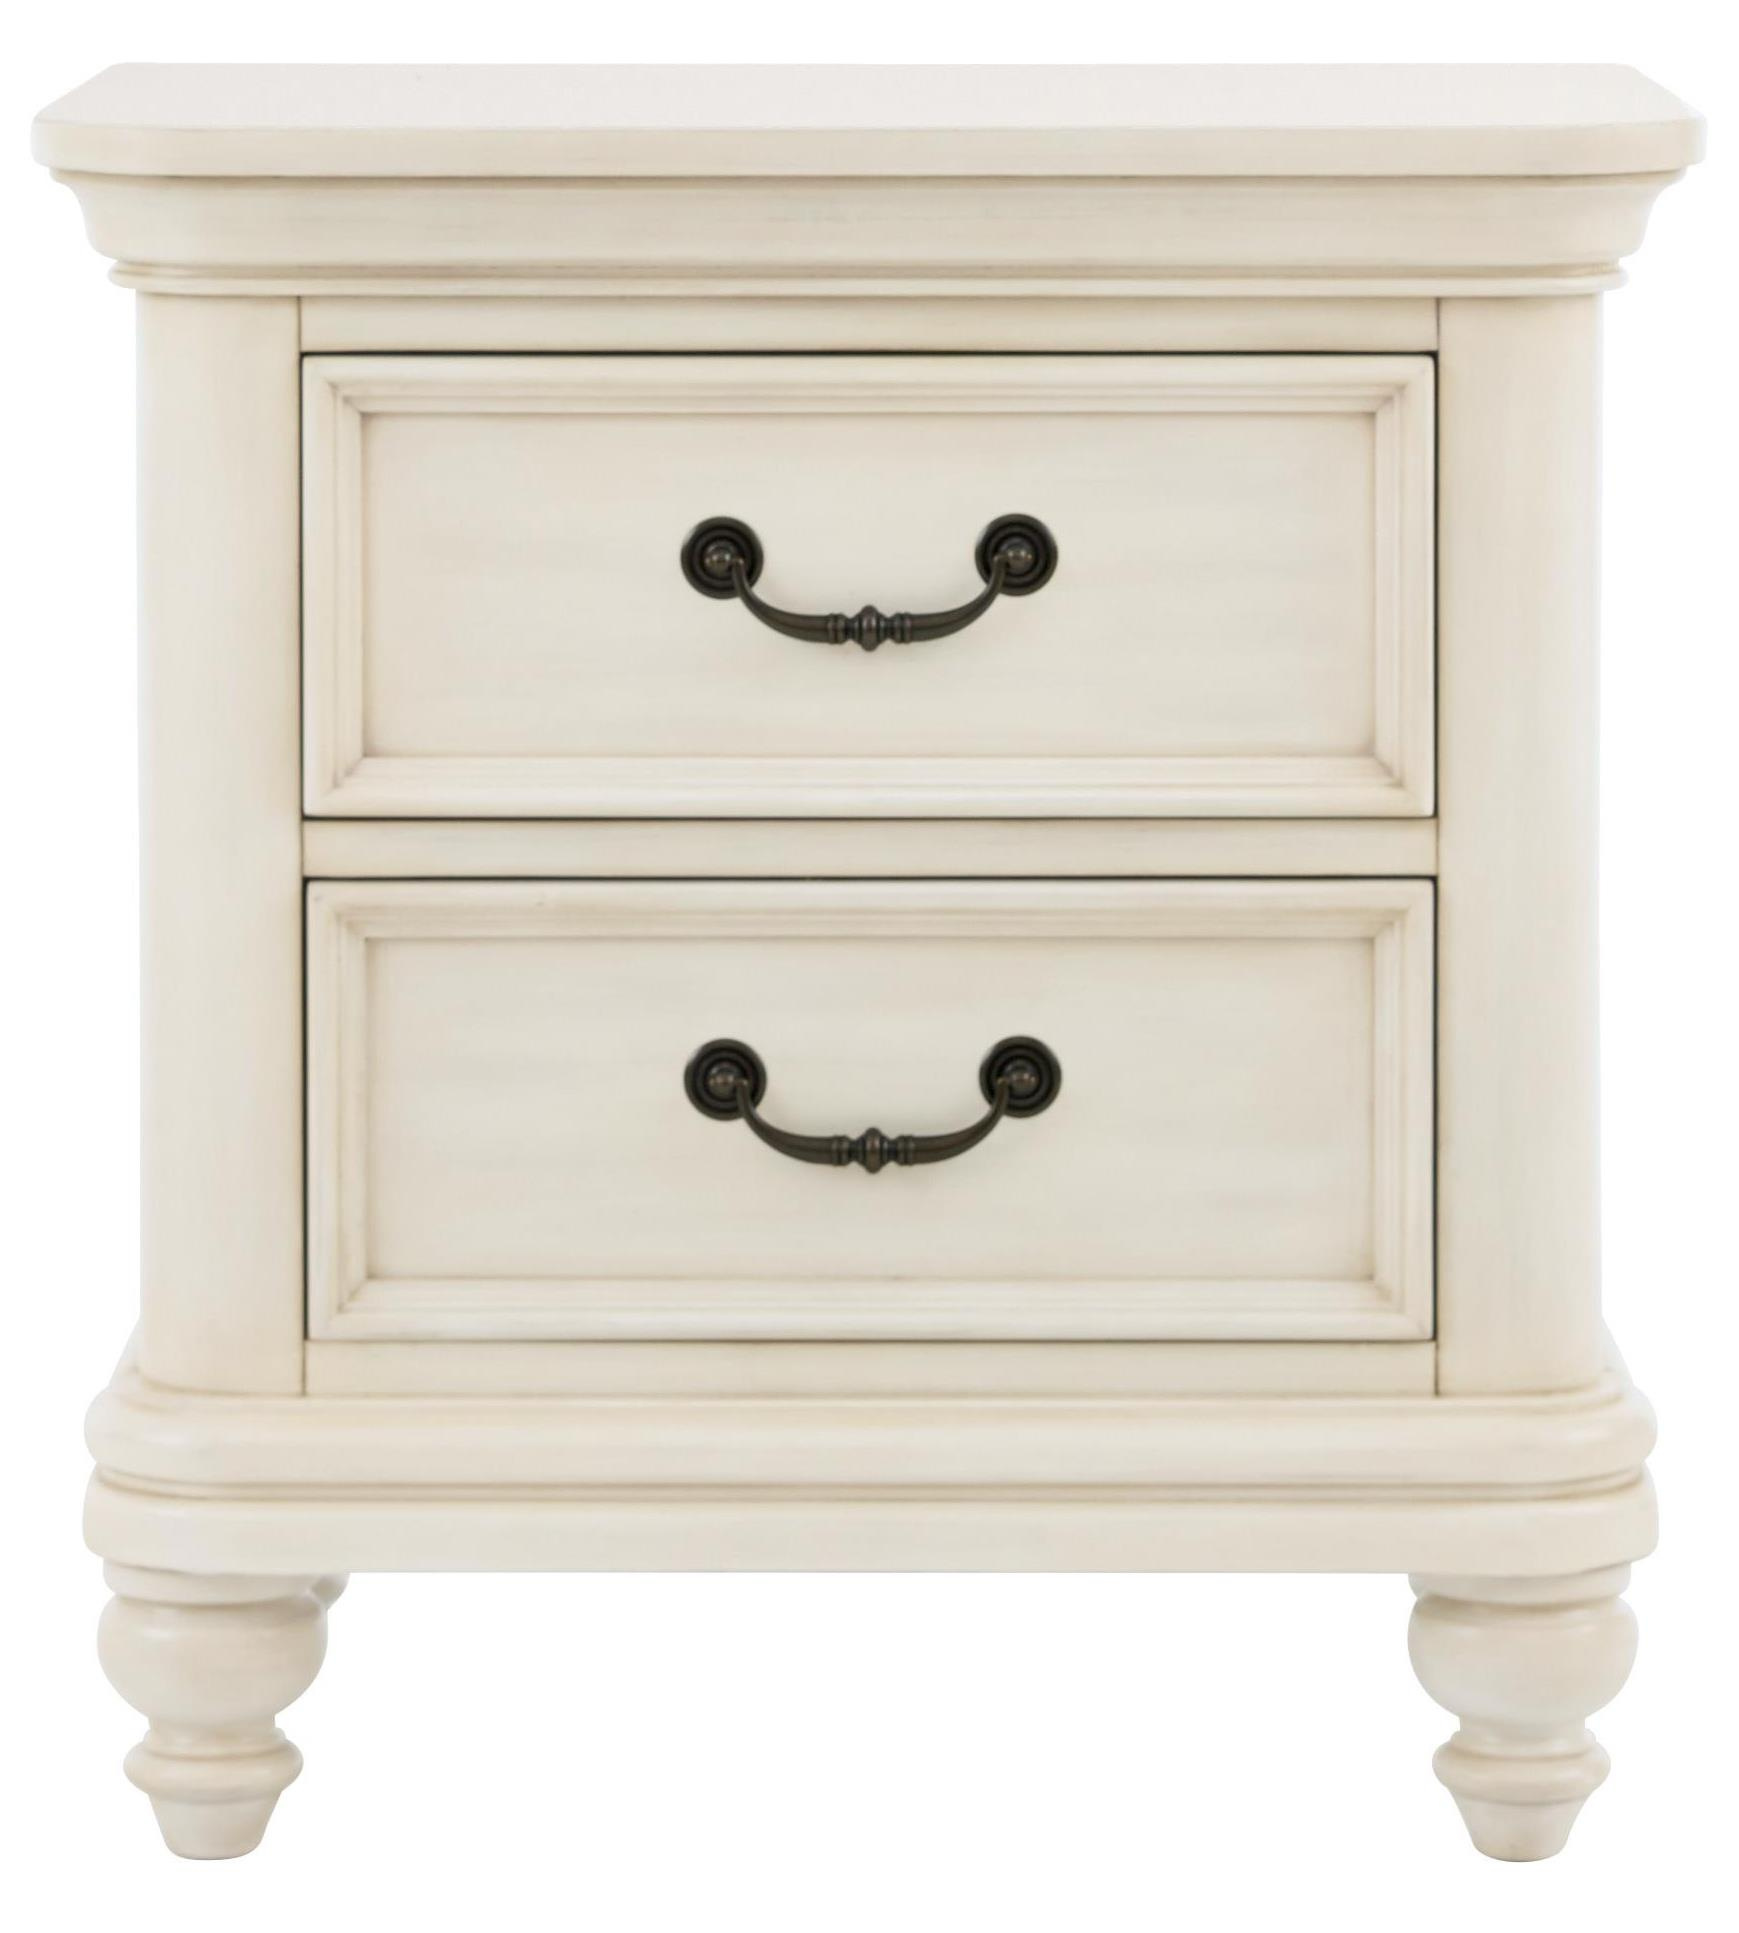 Kidz Gear Everly Nightstand - Item Number: 8890-450